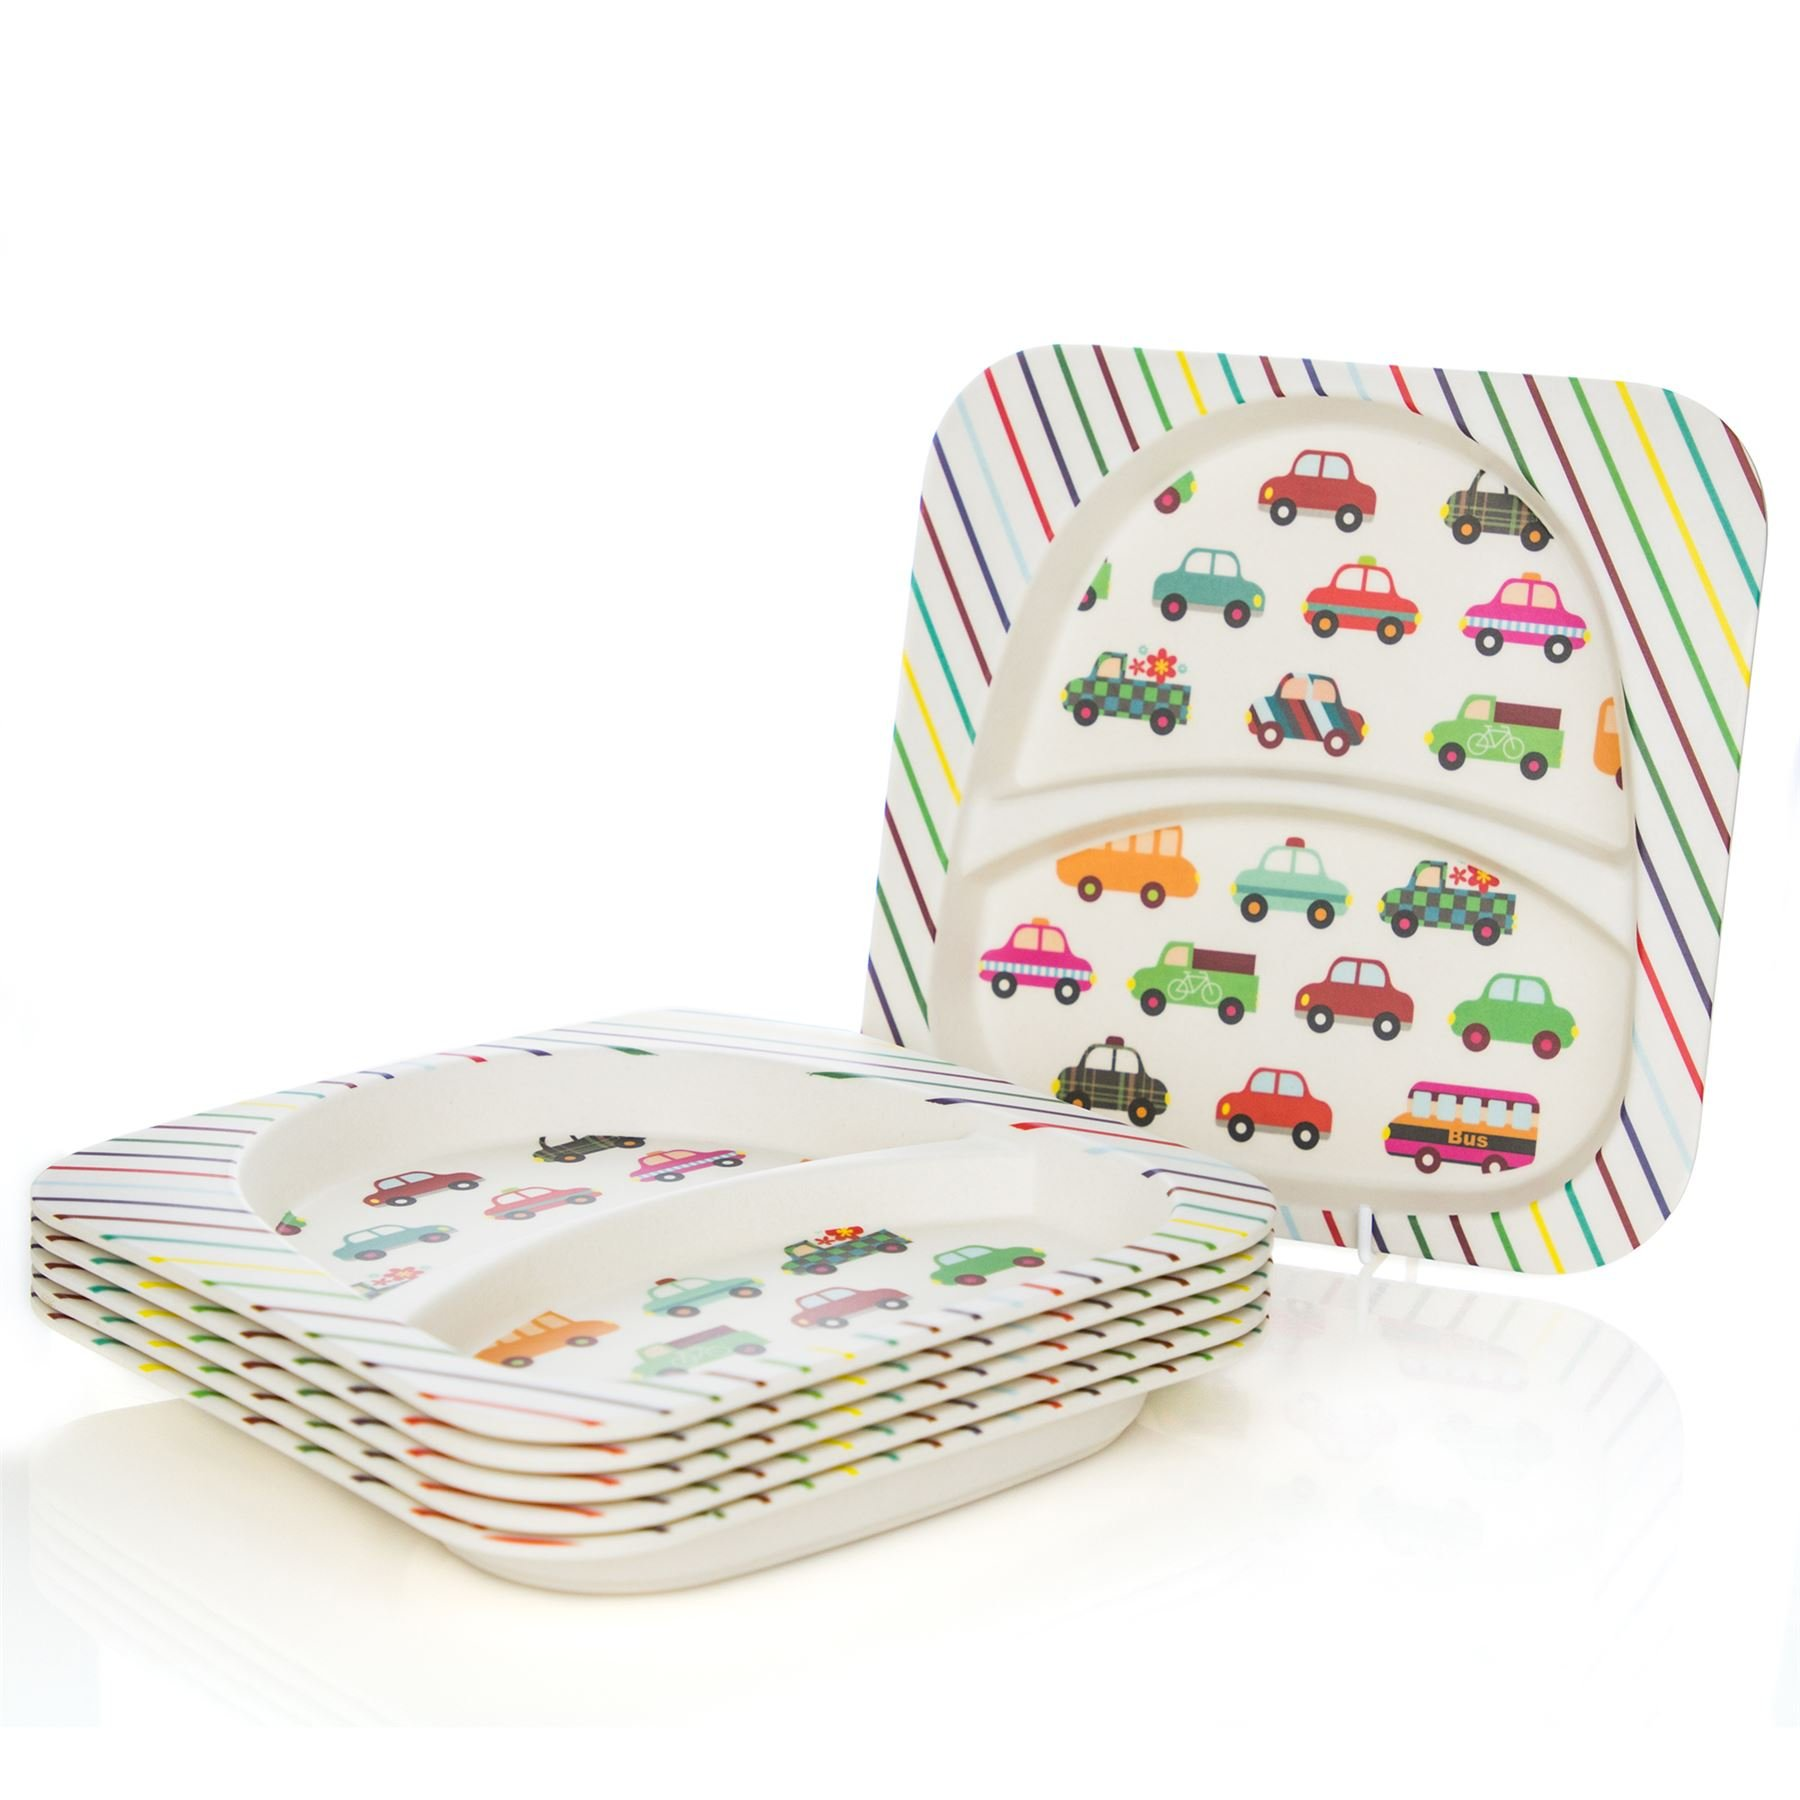 Tiny Dining Children's Bamboo Fibre Dining Plate - Cars - Pack of 6 by Tiny Dining